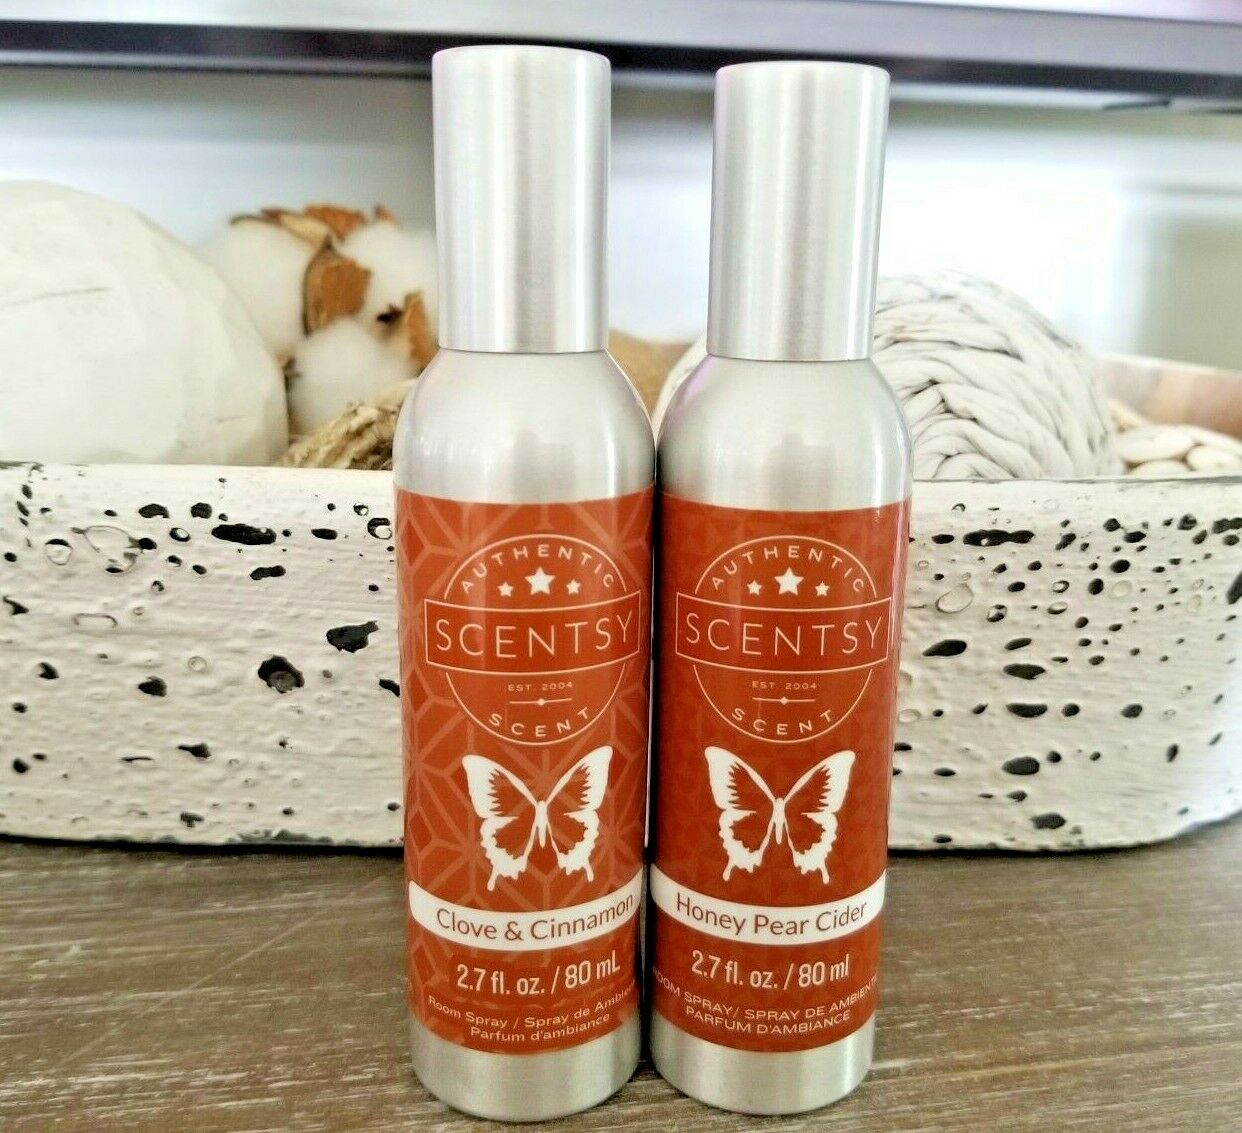 SCENTSY Lot Of 2 Room Sprays CLOVE CINNAMON And HONEY PEAR CIDER New - $19.87